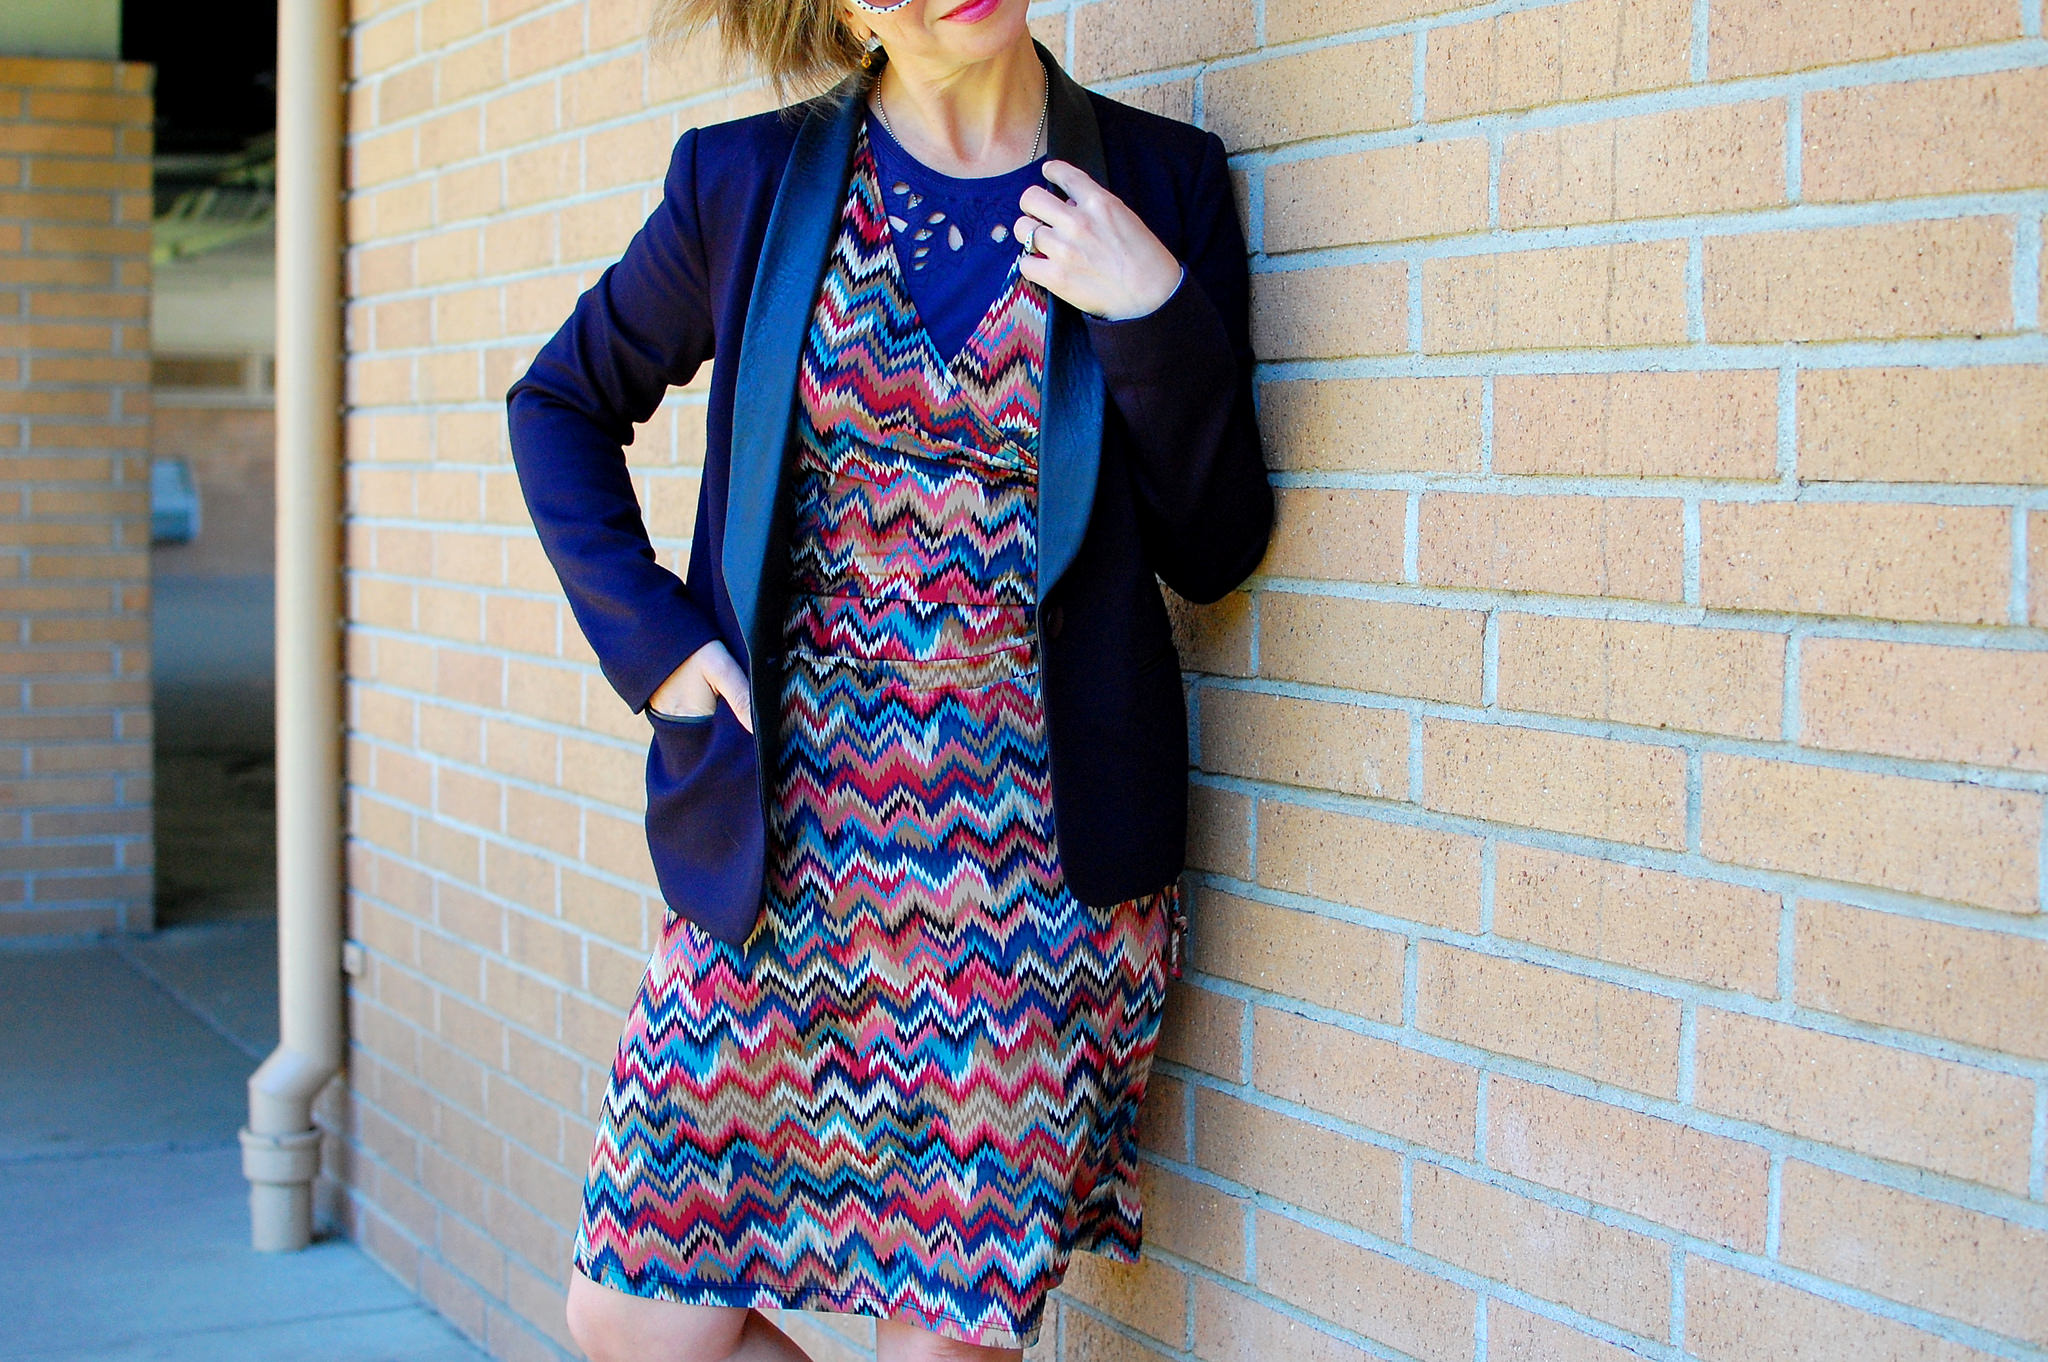 black and navy missoni knockoff outfit ootd whatiwore2day career fair